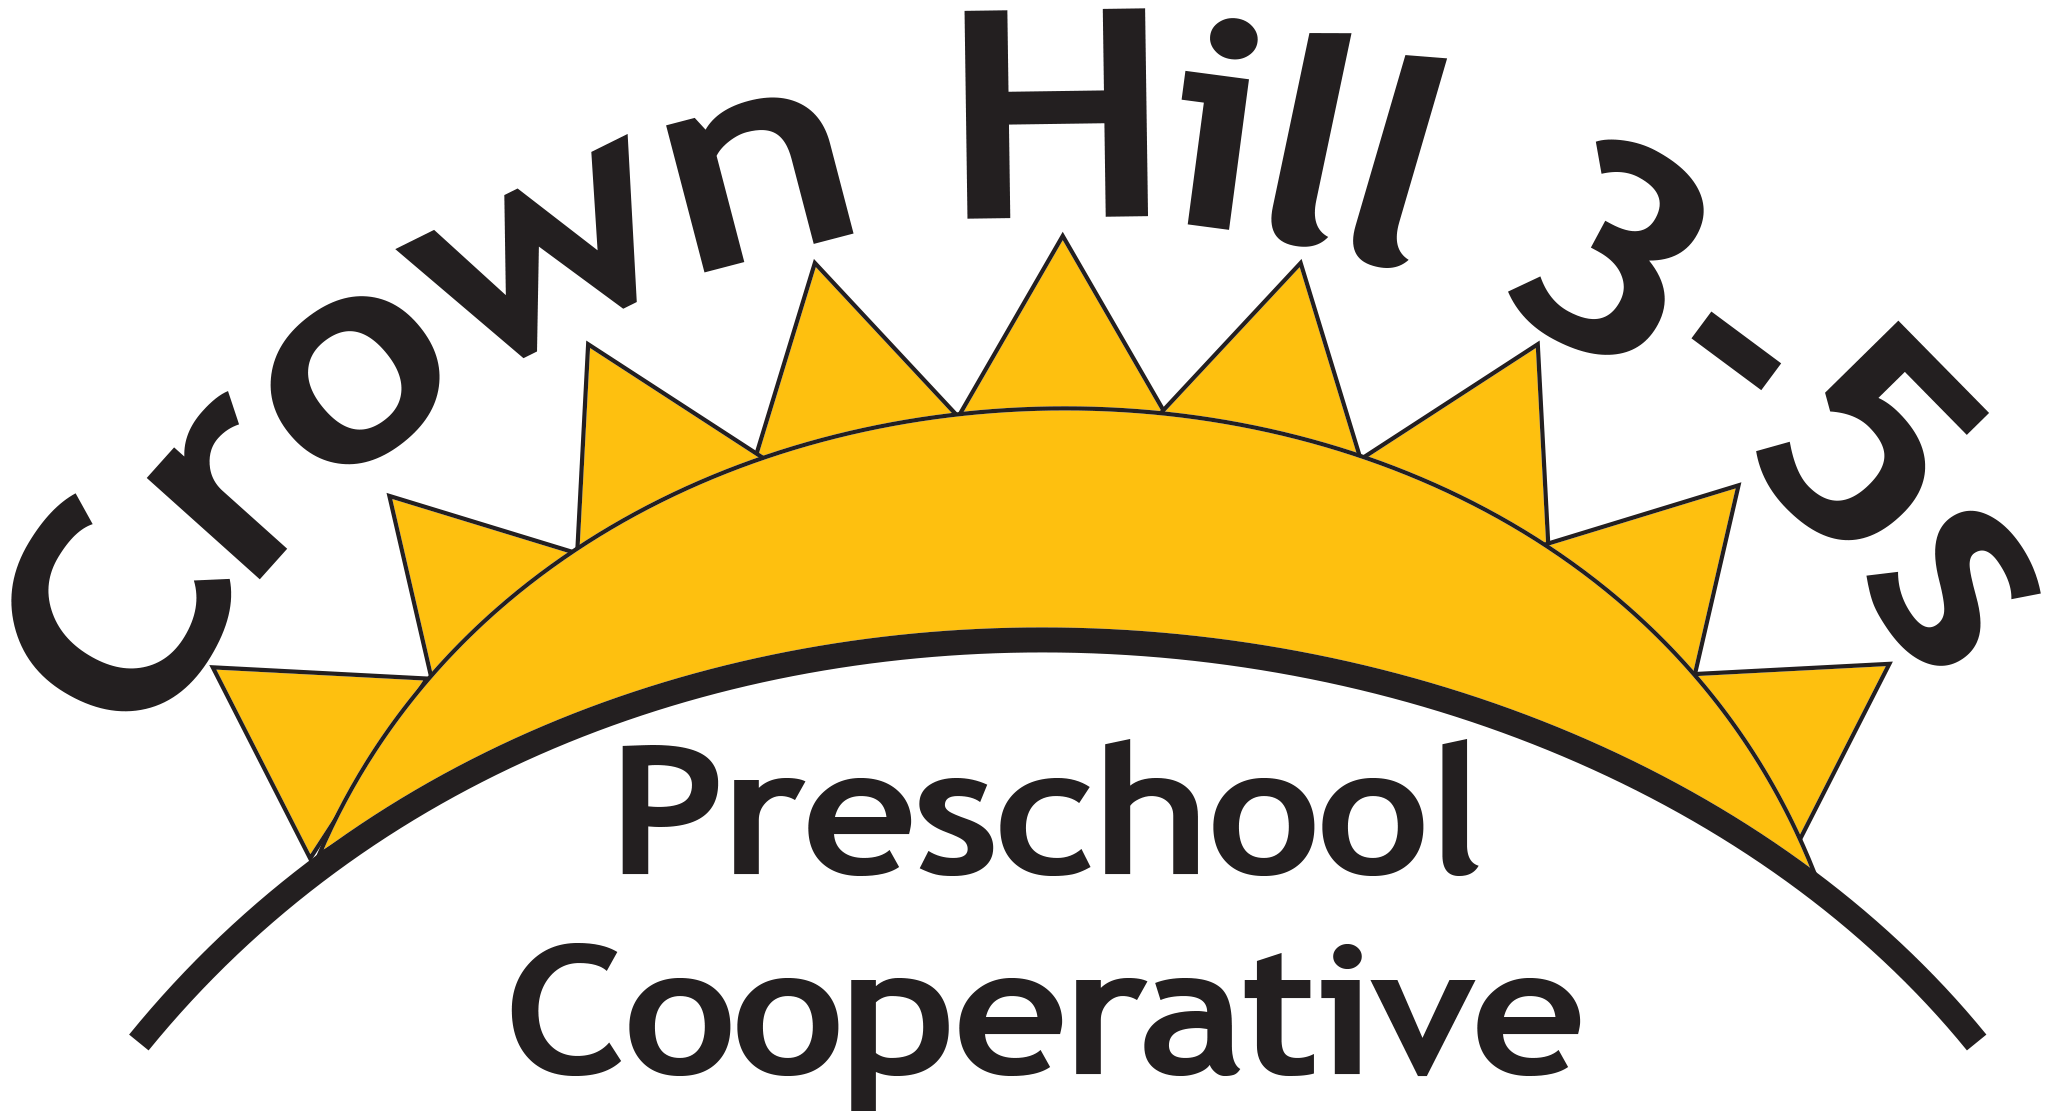 Crown Hill 3-5s Cooperative Preschool